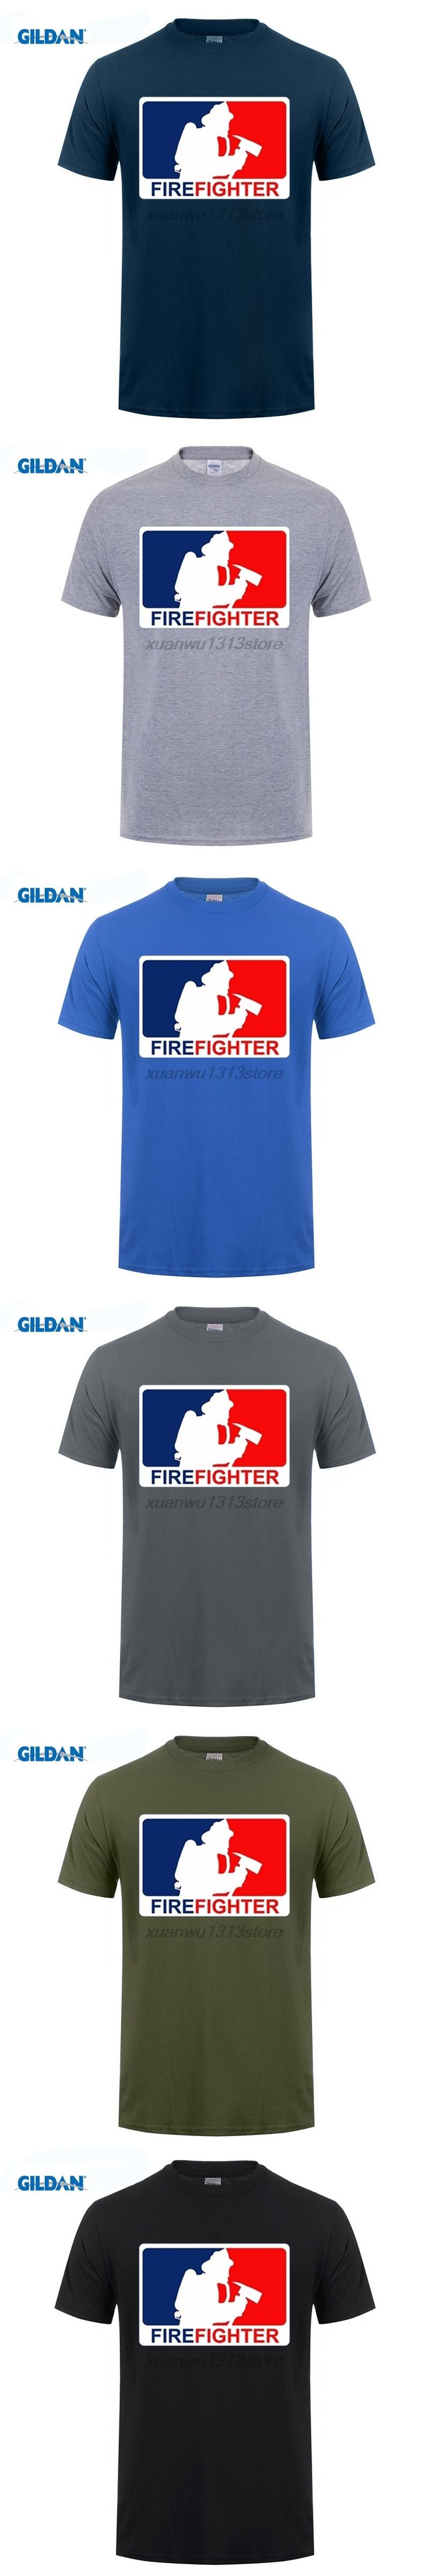 GILDAN O-Neck Tees Firefighter Funny Men Short Sleeve Shirt New Design Adult T Shirt For Men Fashion